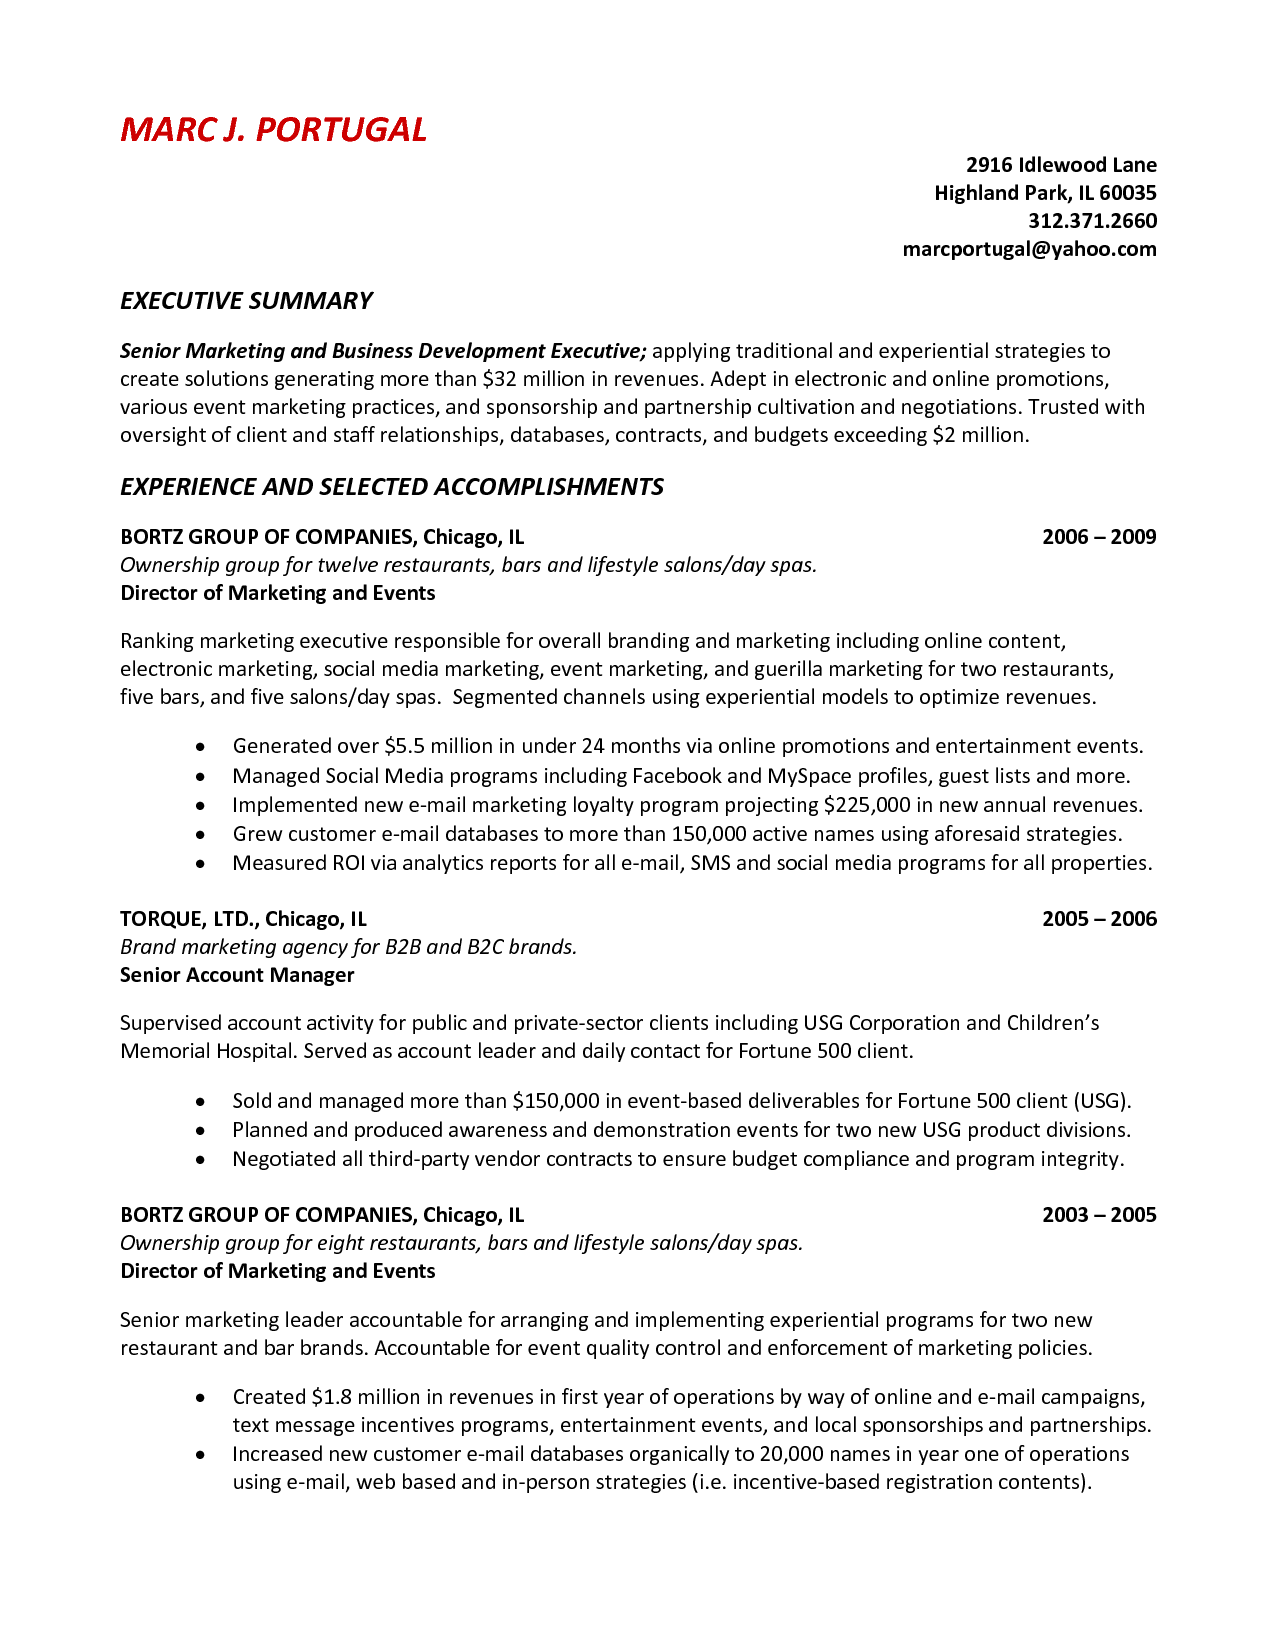 Sample Resume Executive Summary Inside Example Resumeg  Home